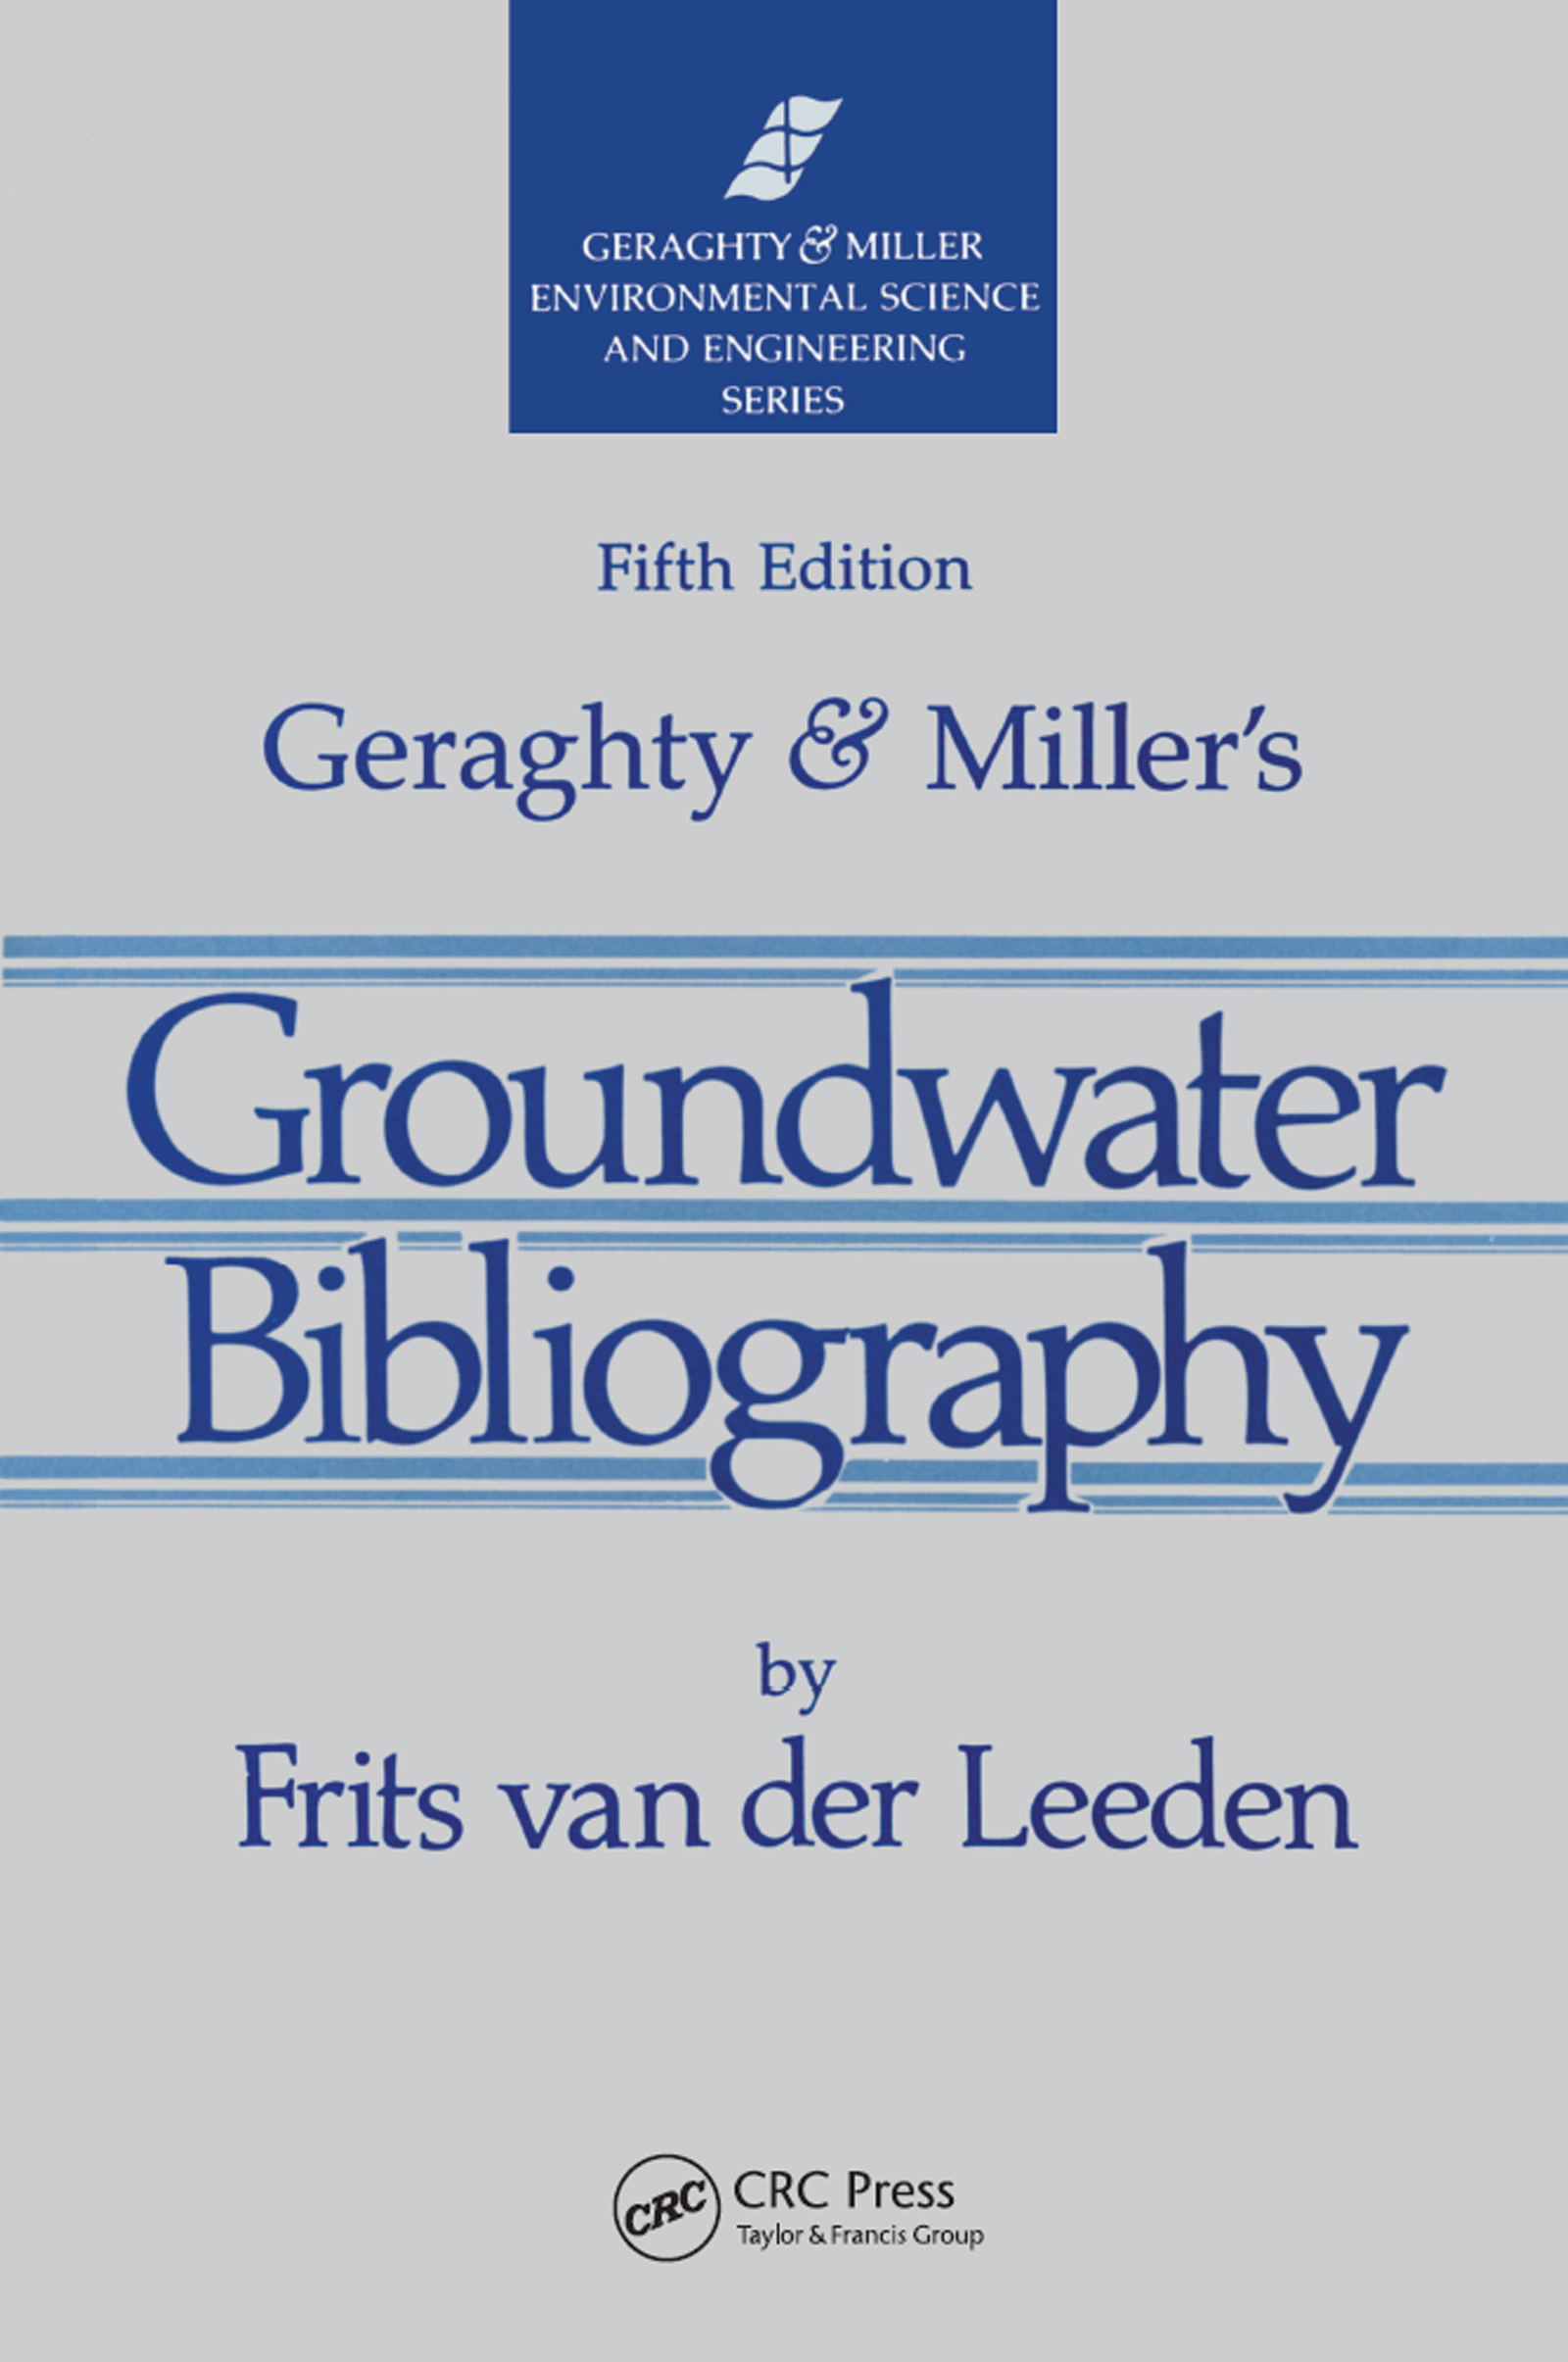 Geraghty & Miller's Groundwater Bibliography